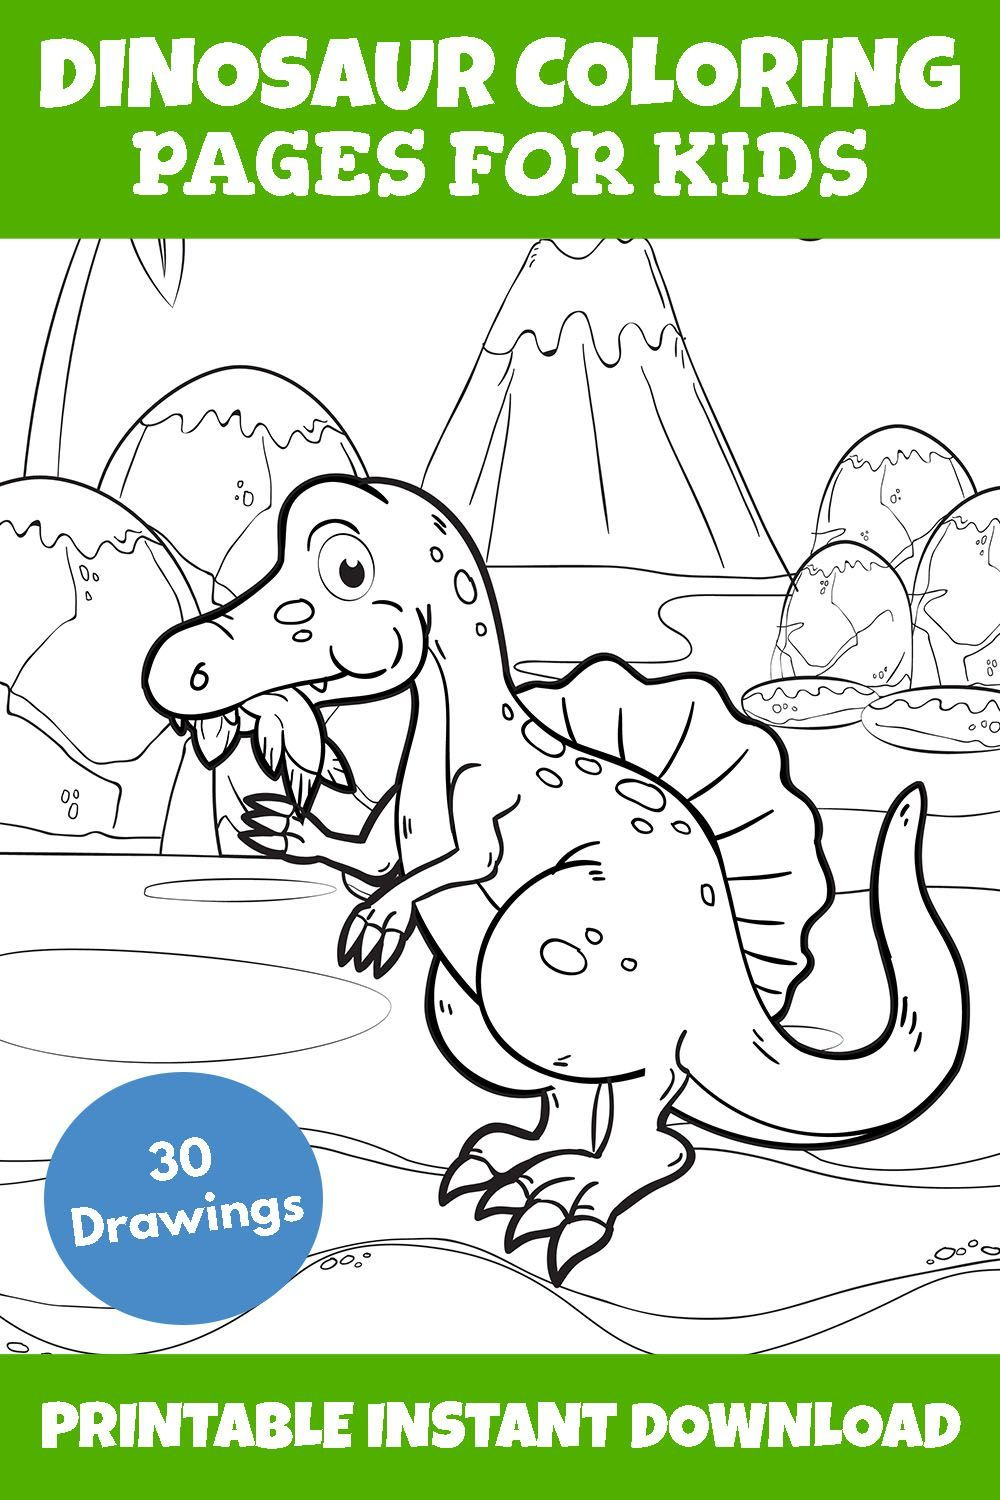 Cute Dinosaur Coloring Printable Pages For Kids Toddlers Fun Creative Activities For Children Dinosaur Coloring Pages Dinosaur Coloring Coloring Books